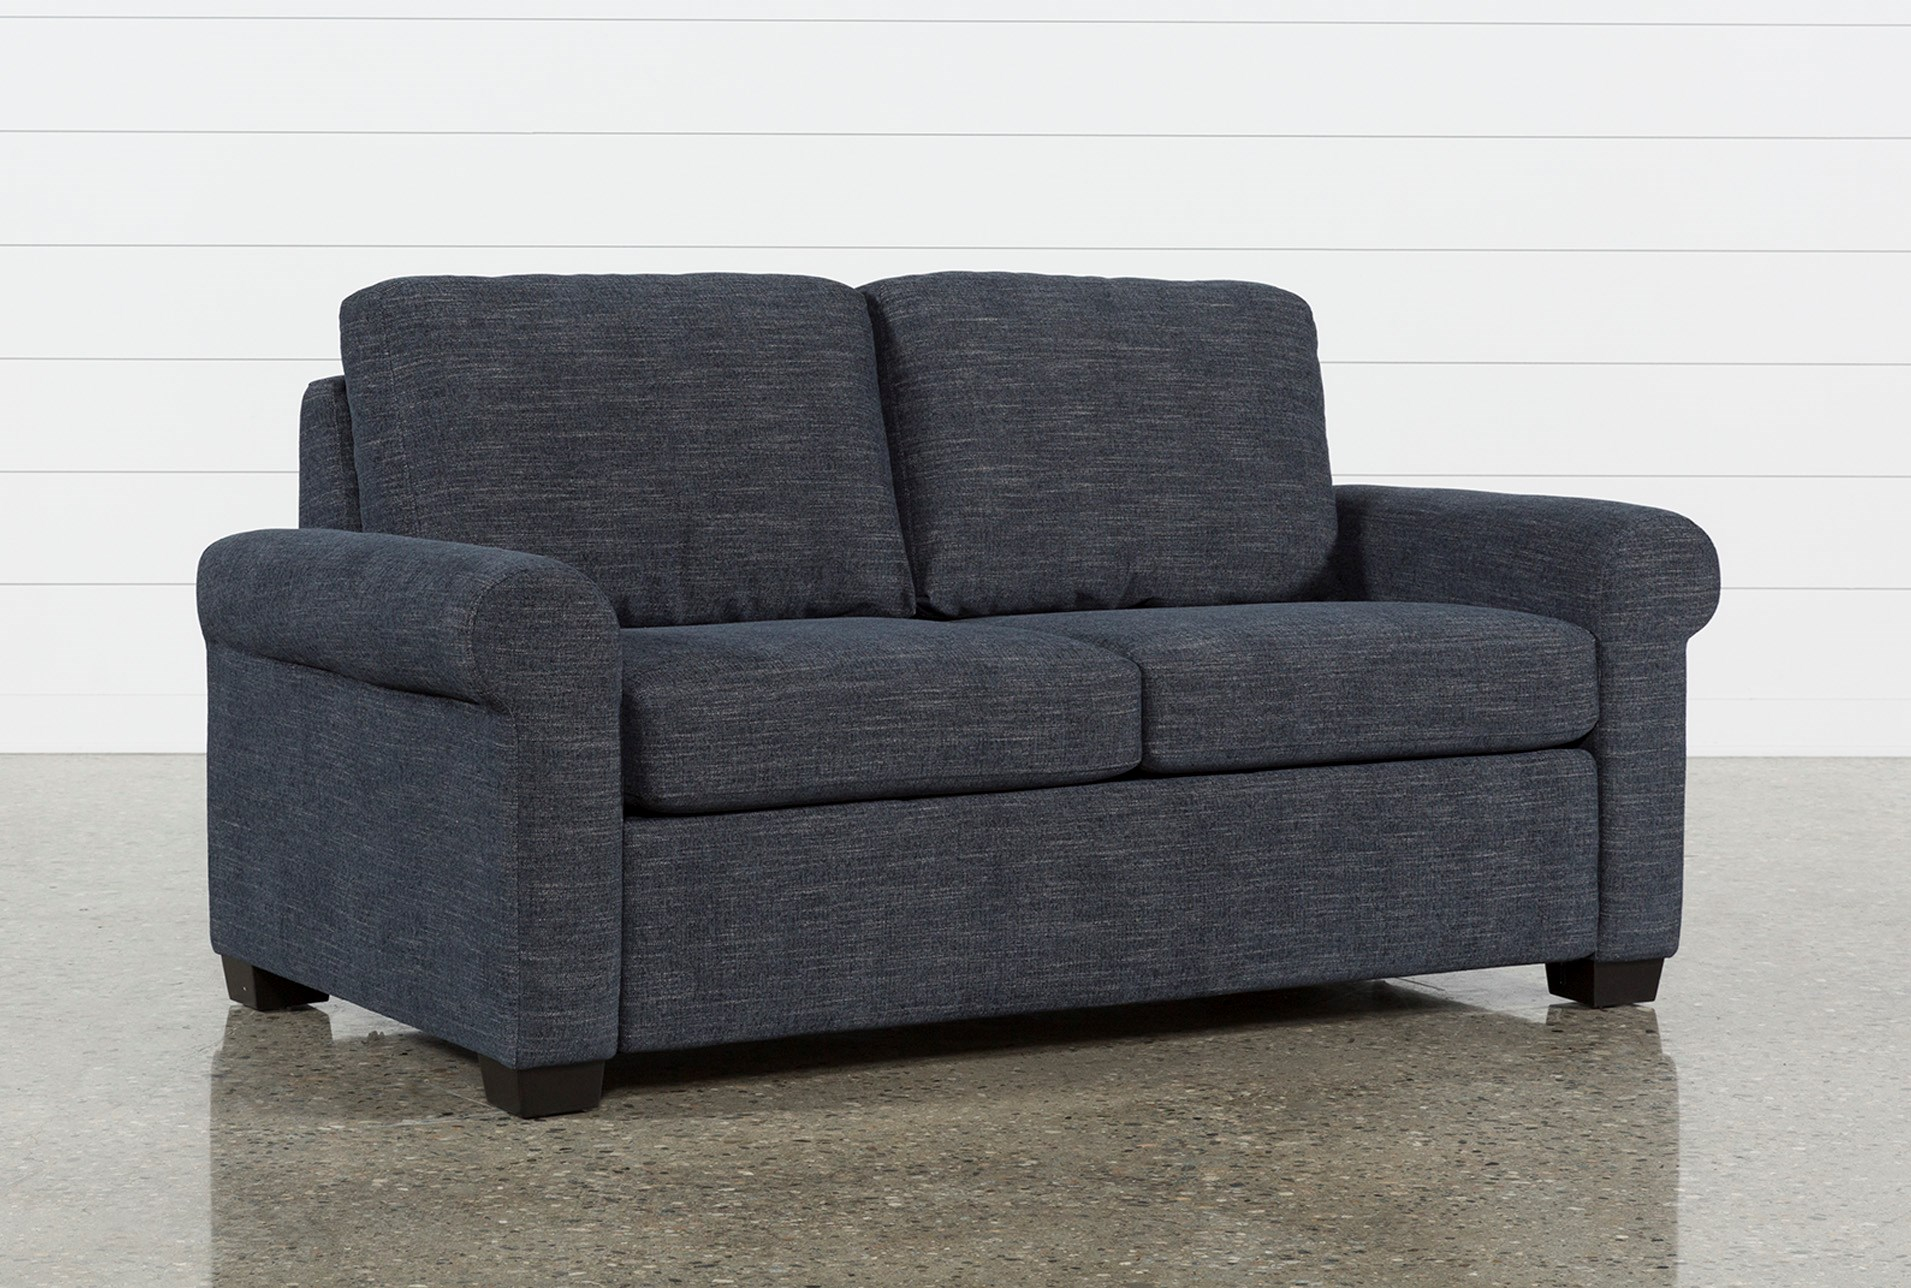 Alexis Denim Full Sofa Sleeper Qty 1 Has Been Successfully Added To Your Cart